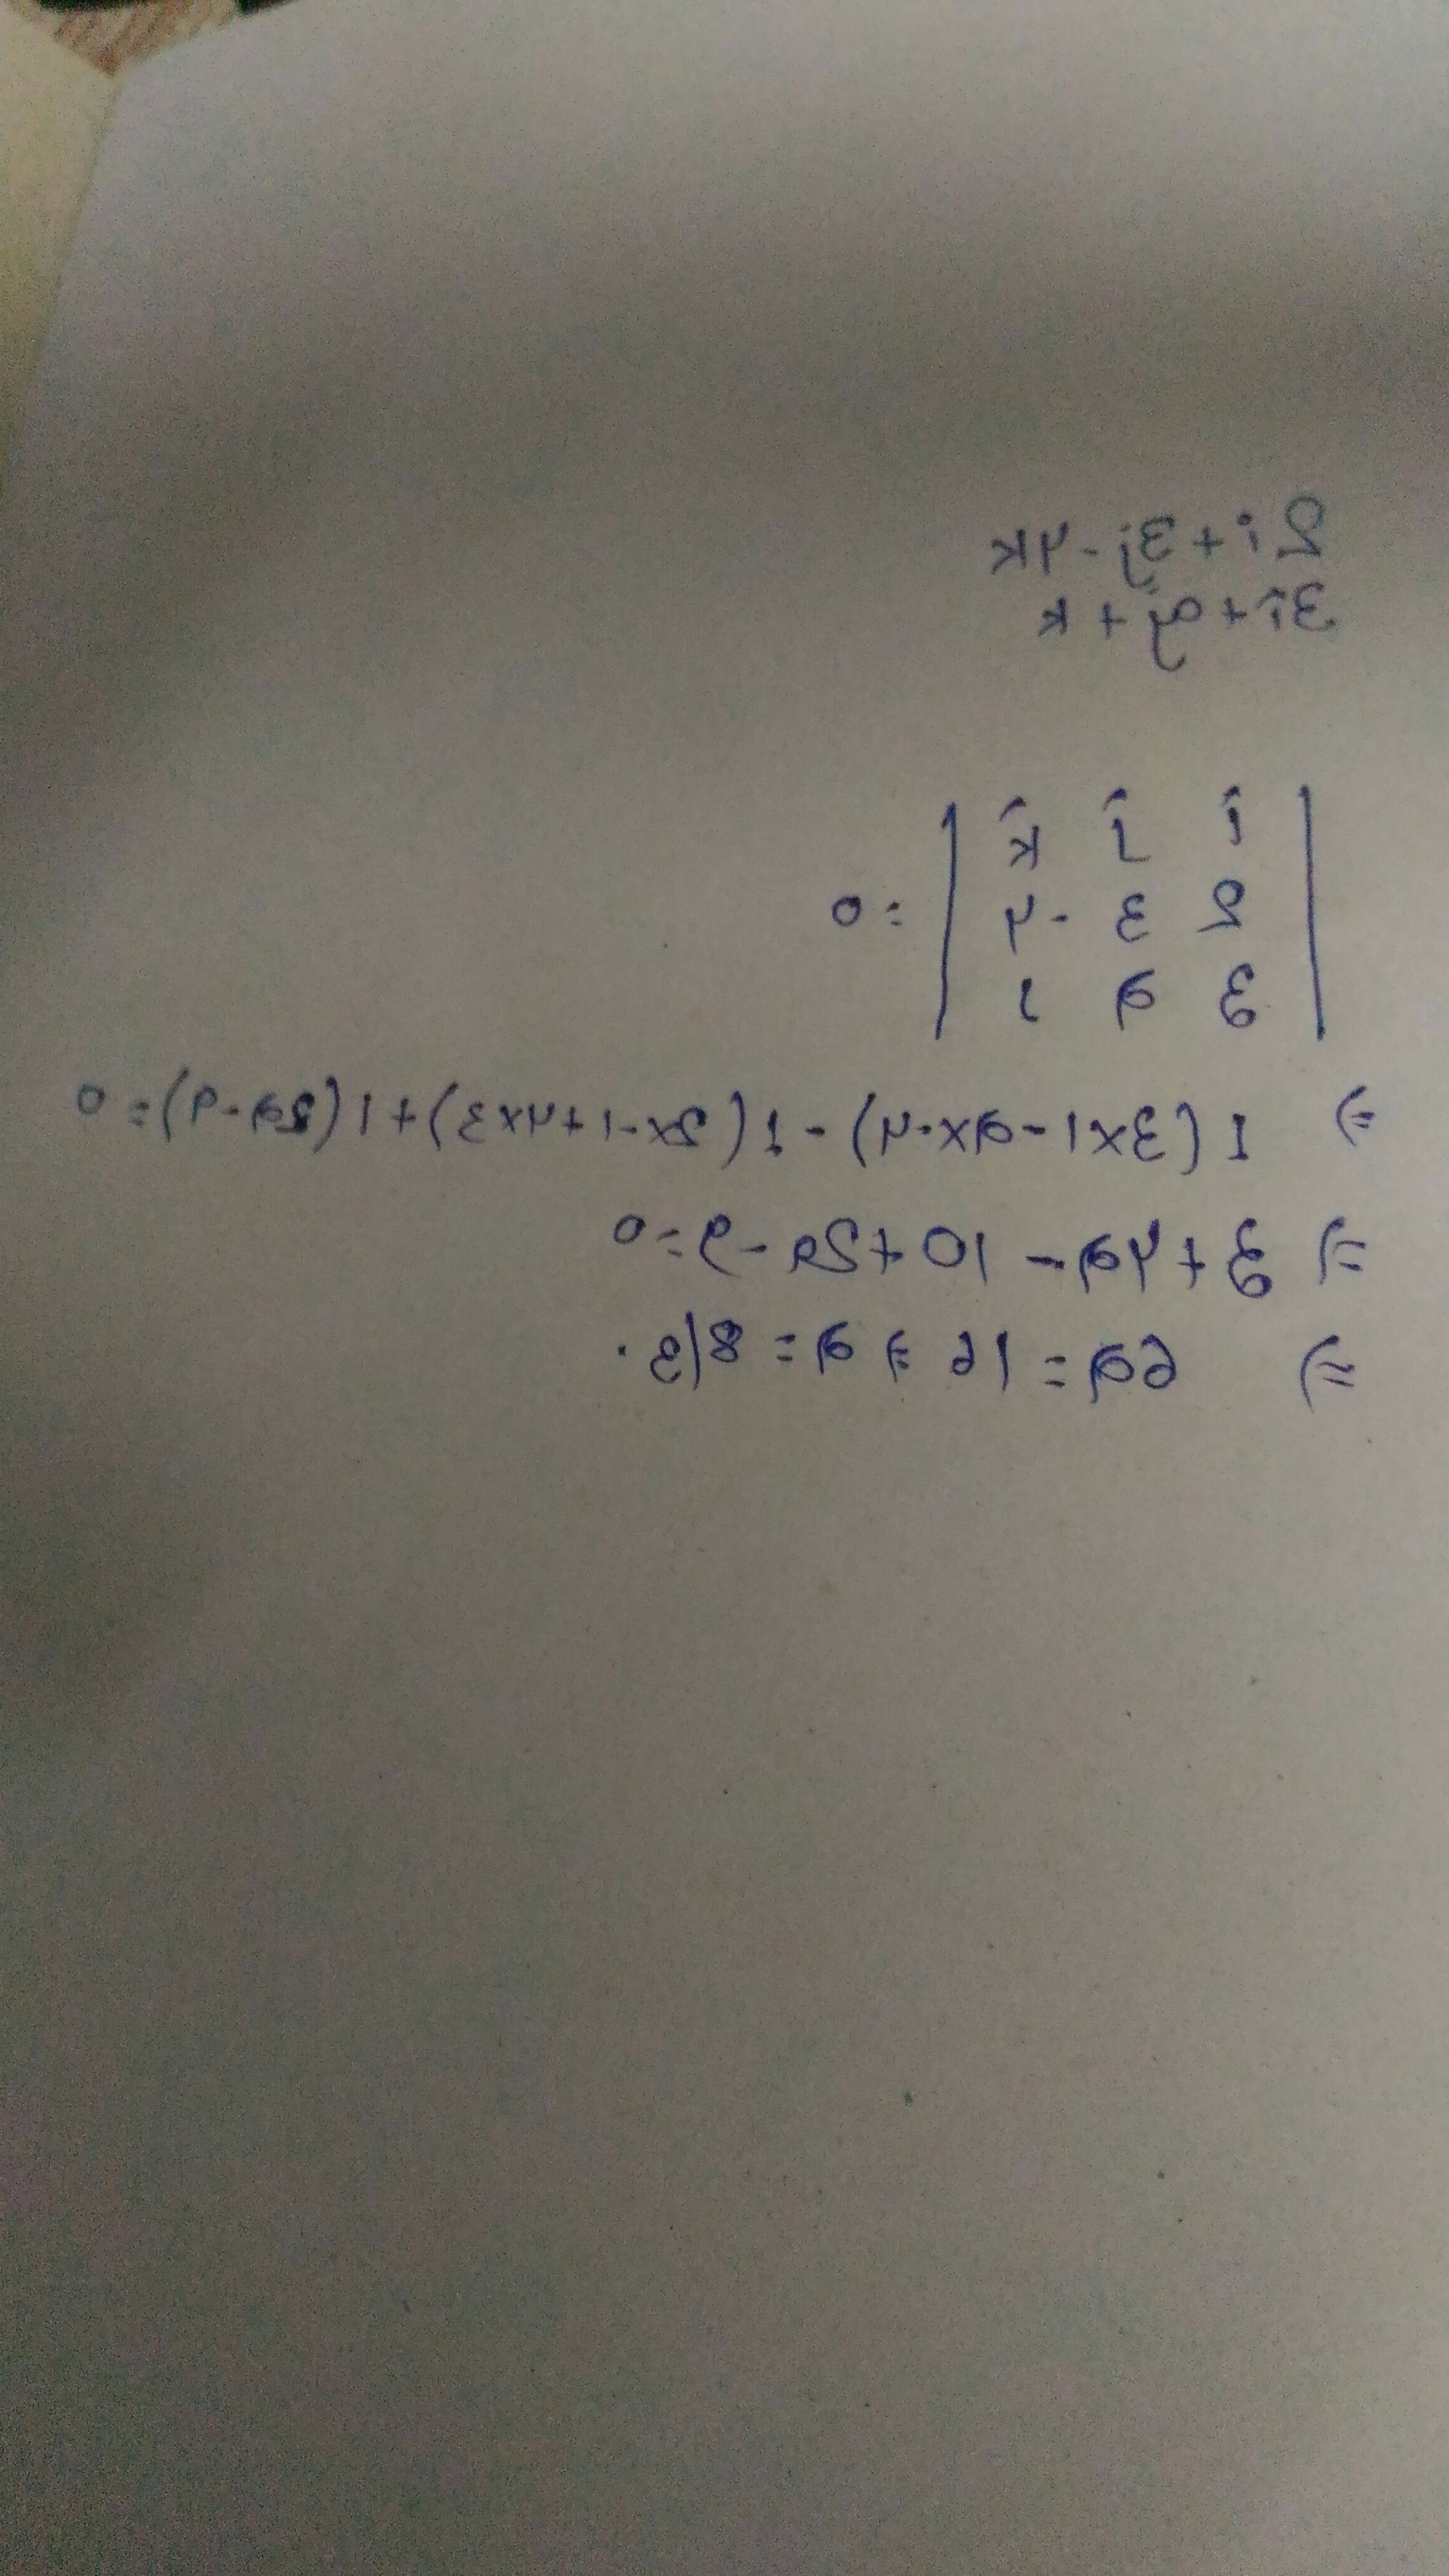 Parallel Vectors K: What Is The Condition For The Vector I J K And I Aj K To Be Parallel